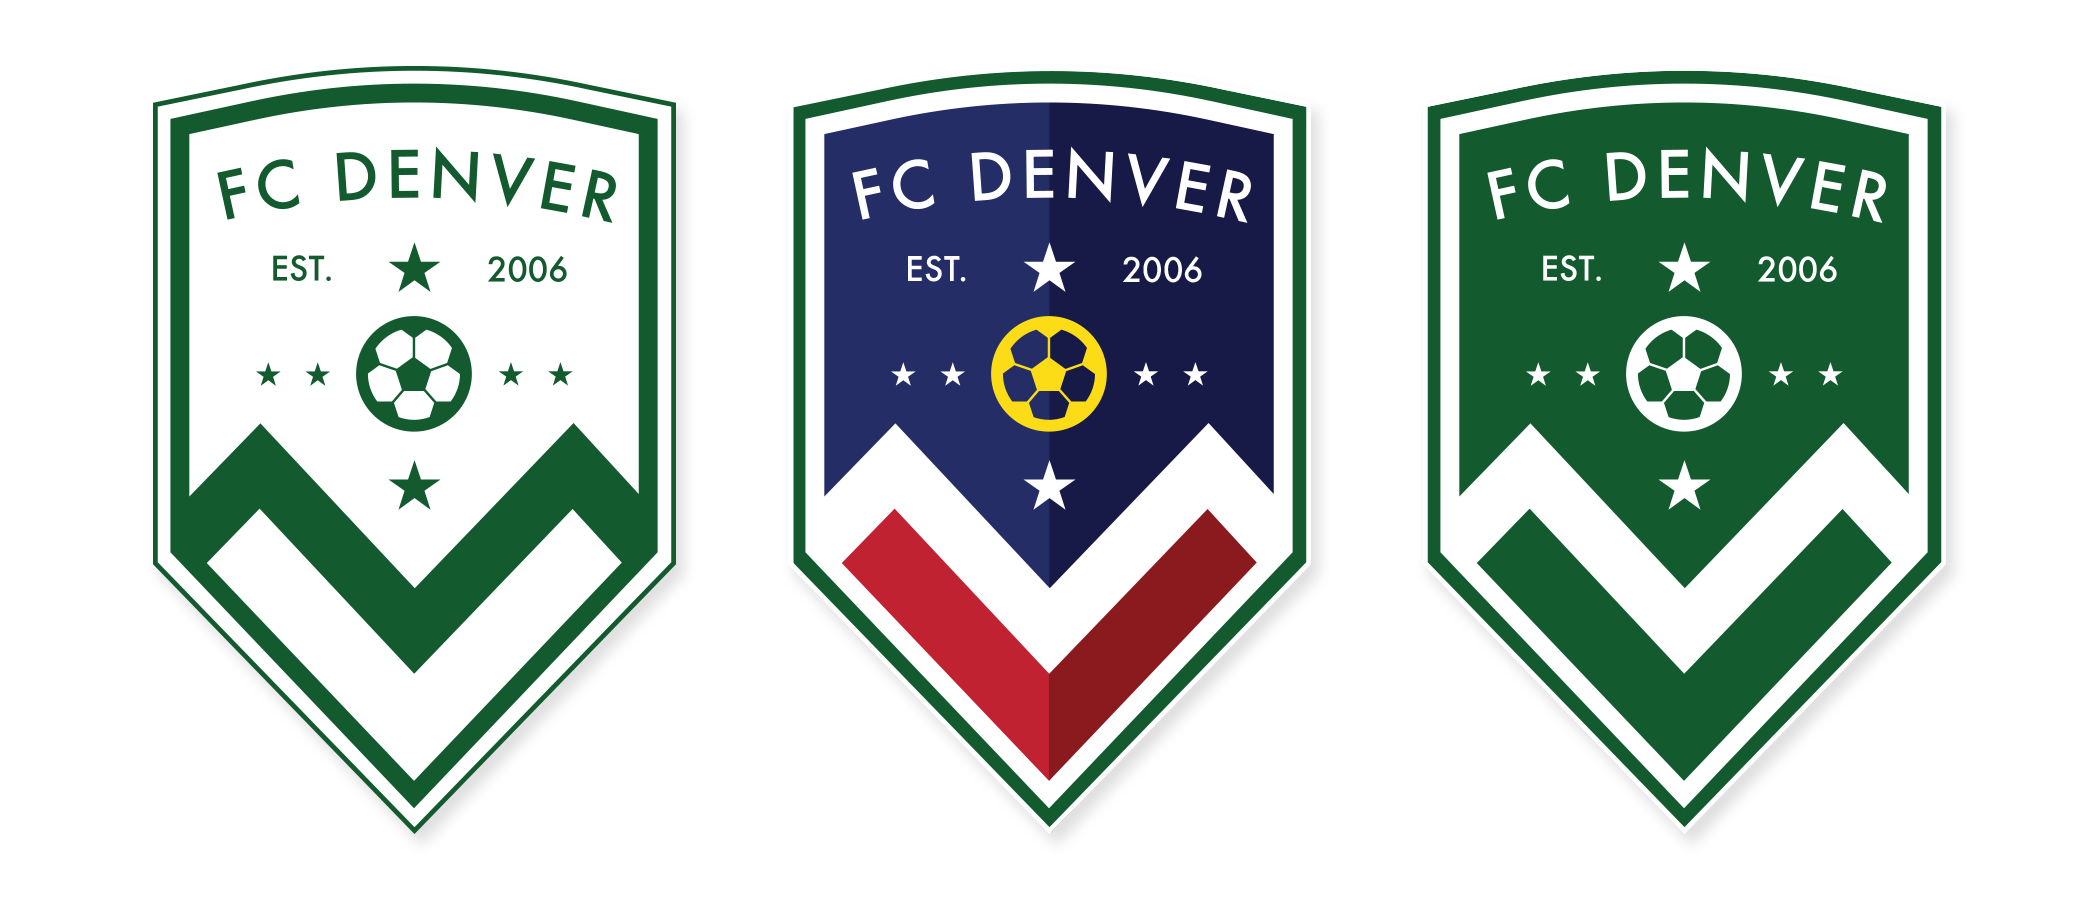 FC Denver Logos Options.png